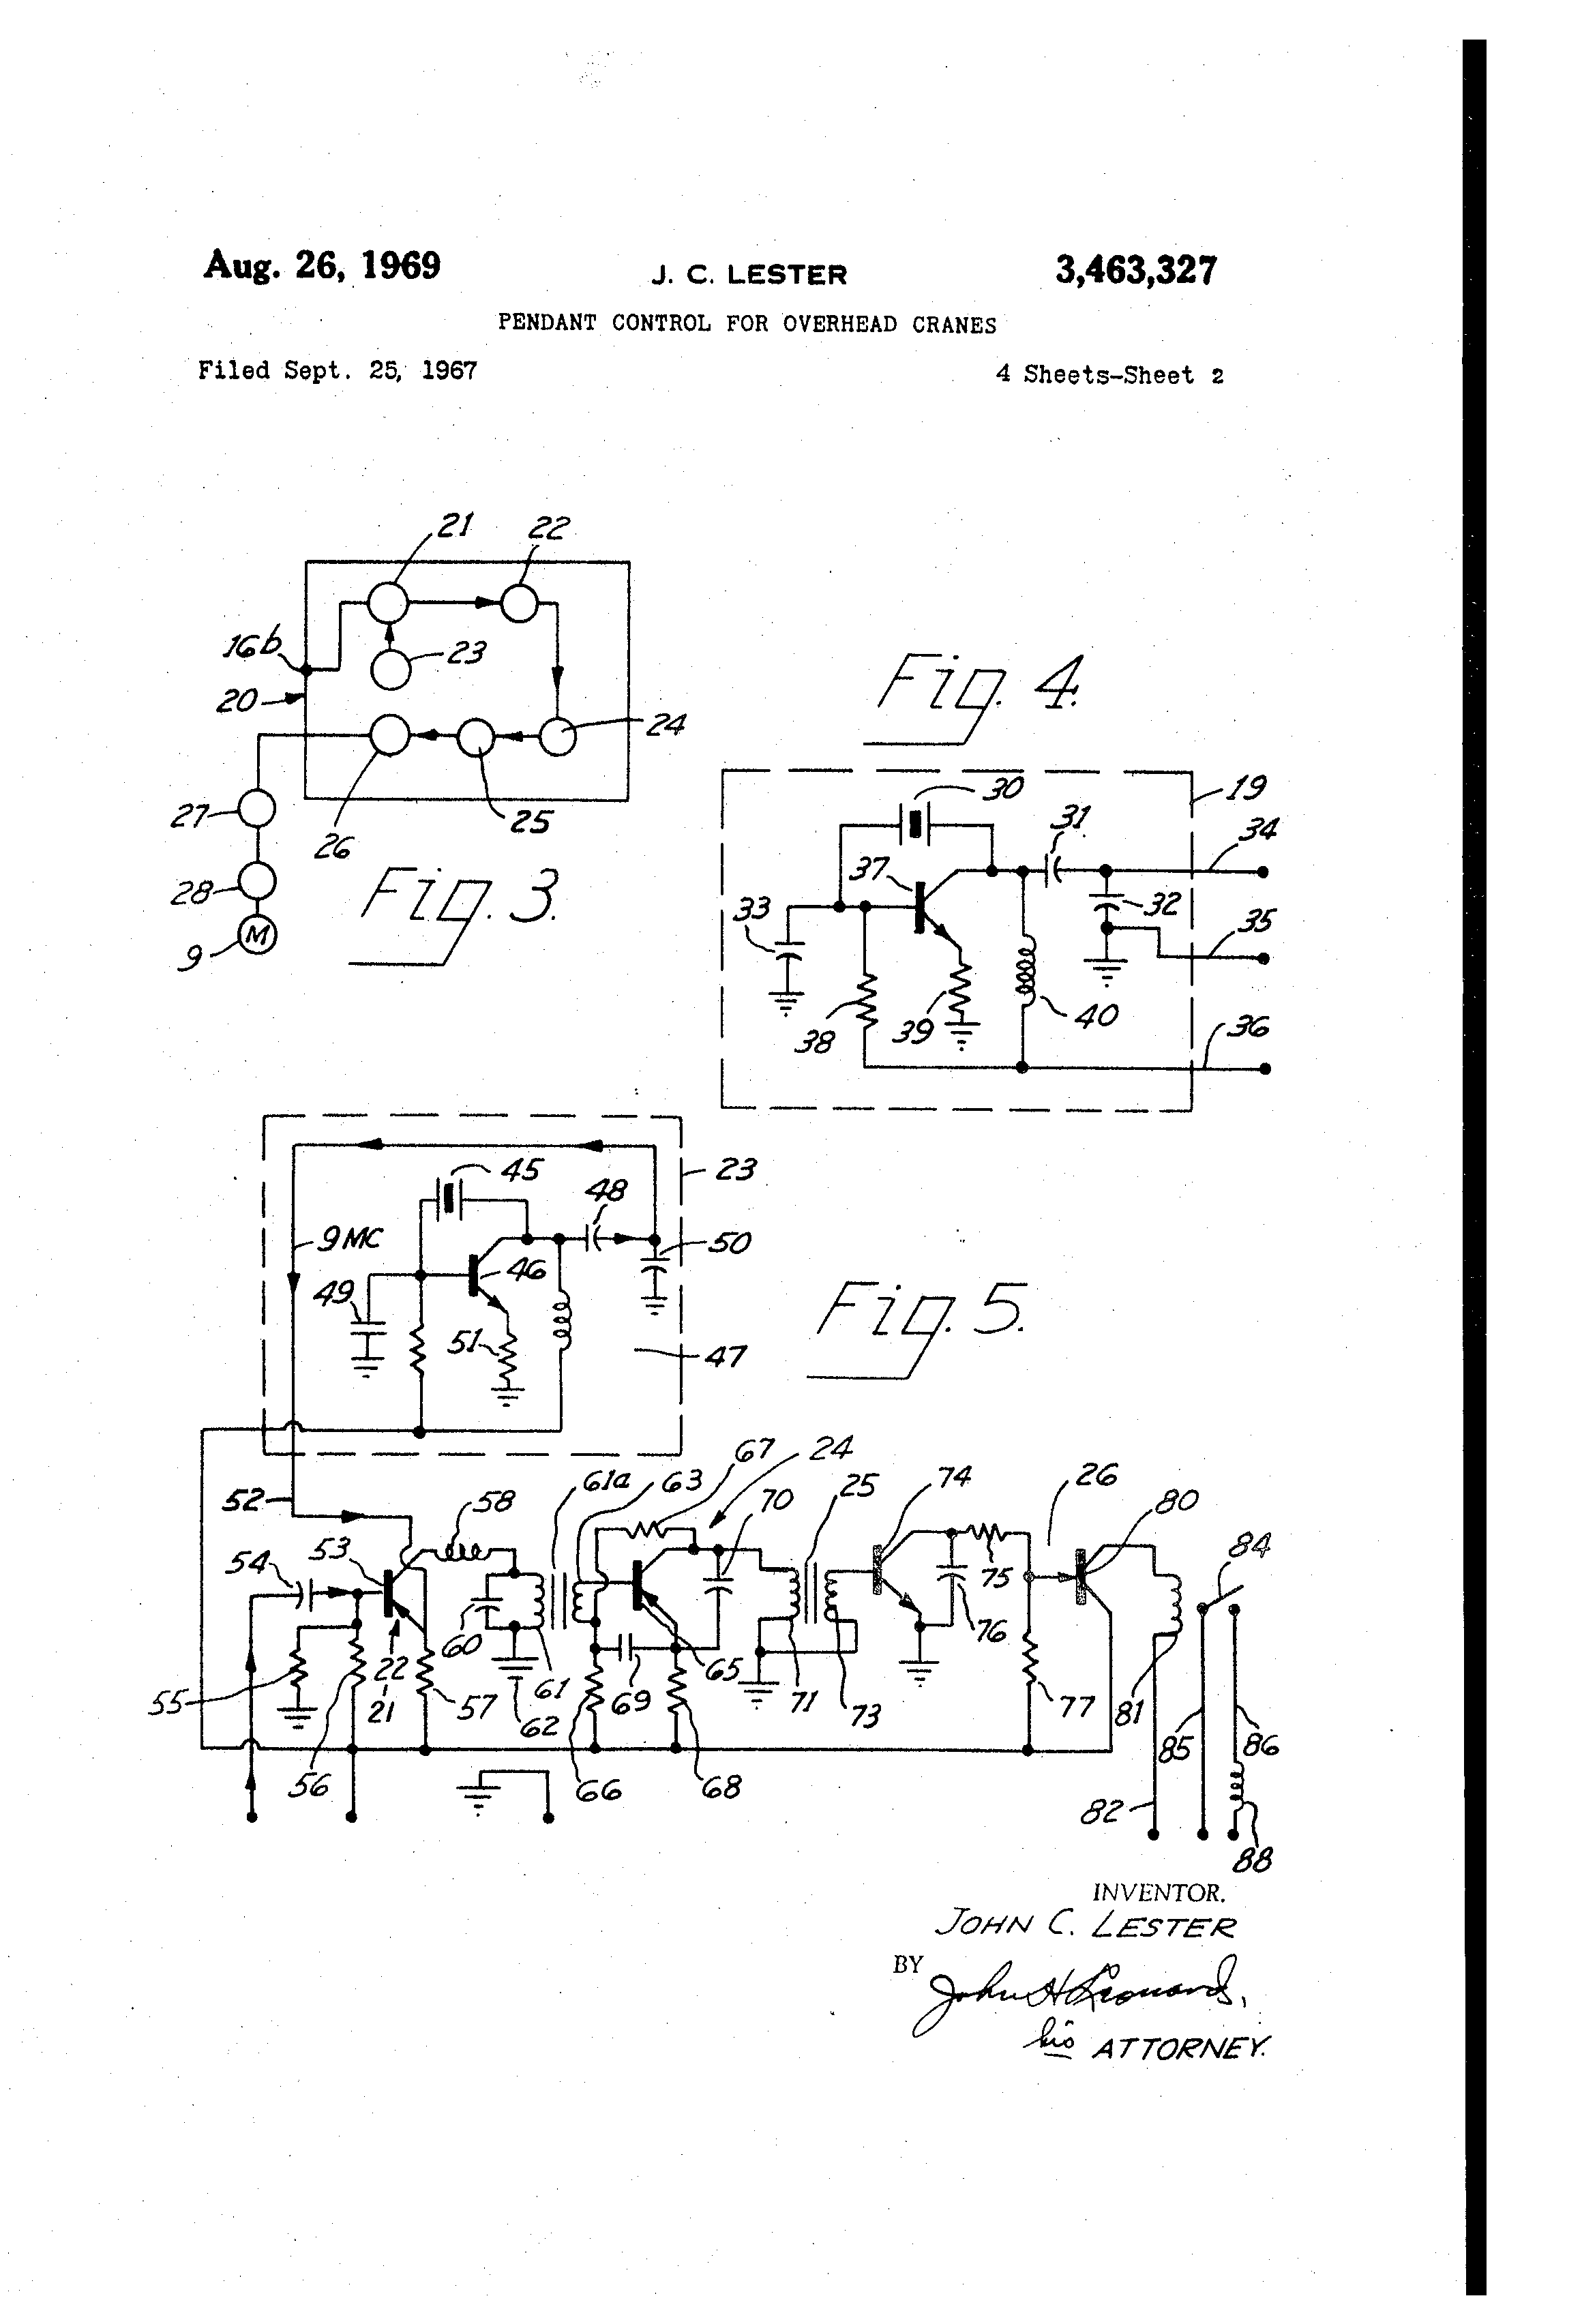 US3463327 1 patent us3463327 pendant control for overhead cranes google demag crane wiring diagram at reclaimingppi.co